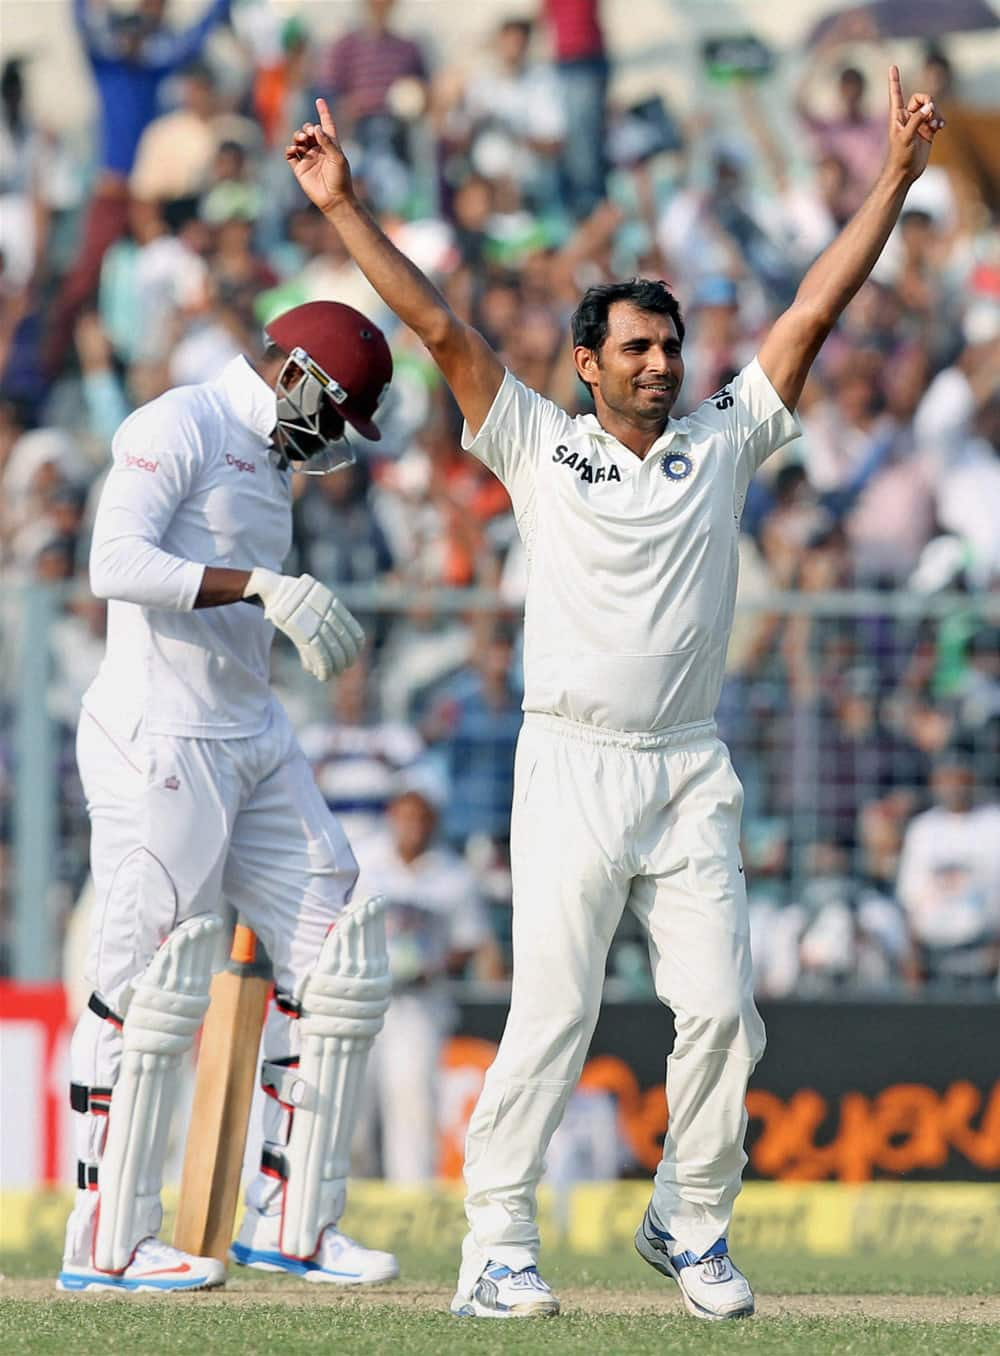 Mohammed Shami after taking the last wicket on the first day of the first test match between India and West Indies at Eden Garden in Kolkata.